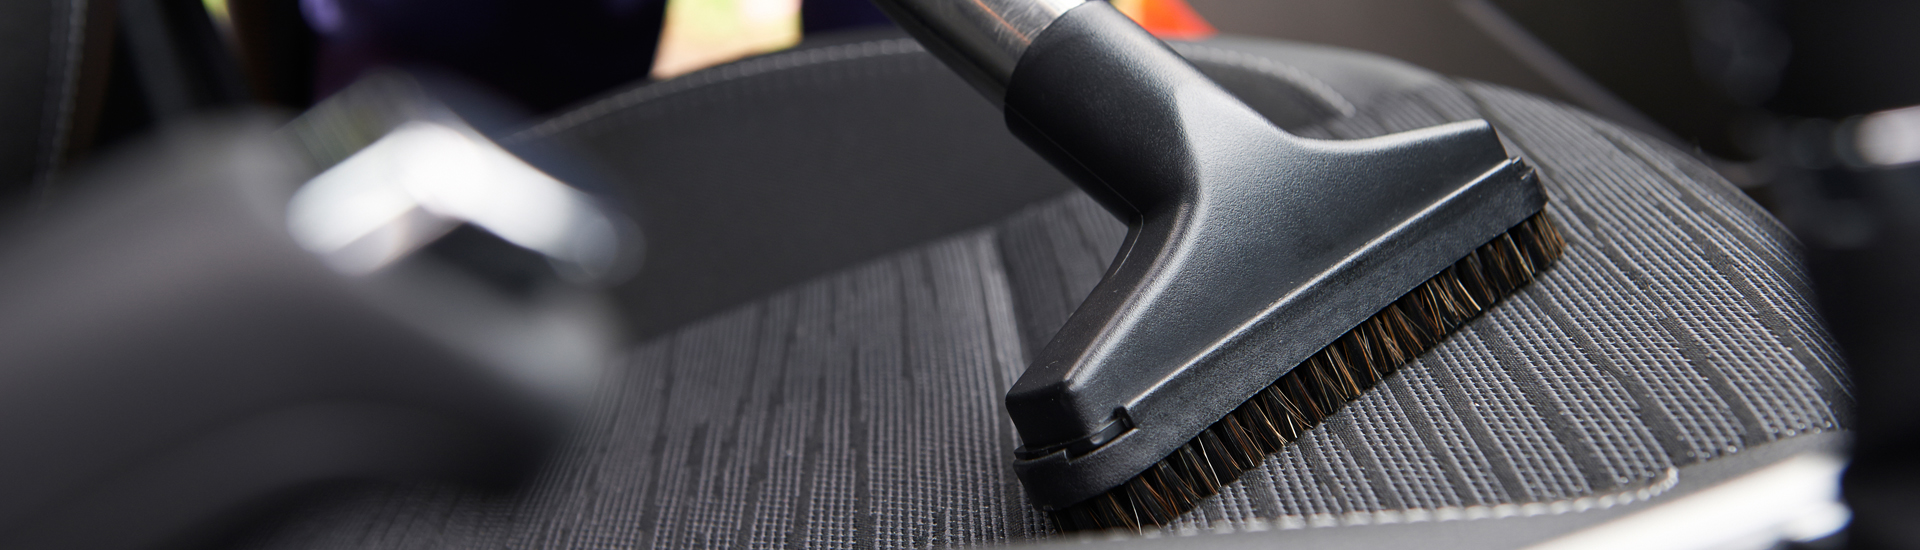 Hoovering Seat Of Car During Car Cleaning